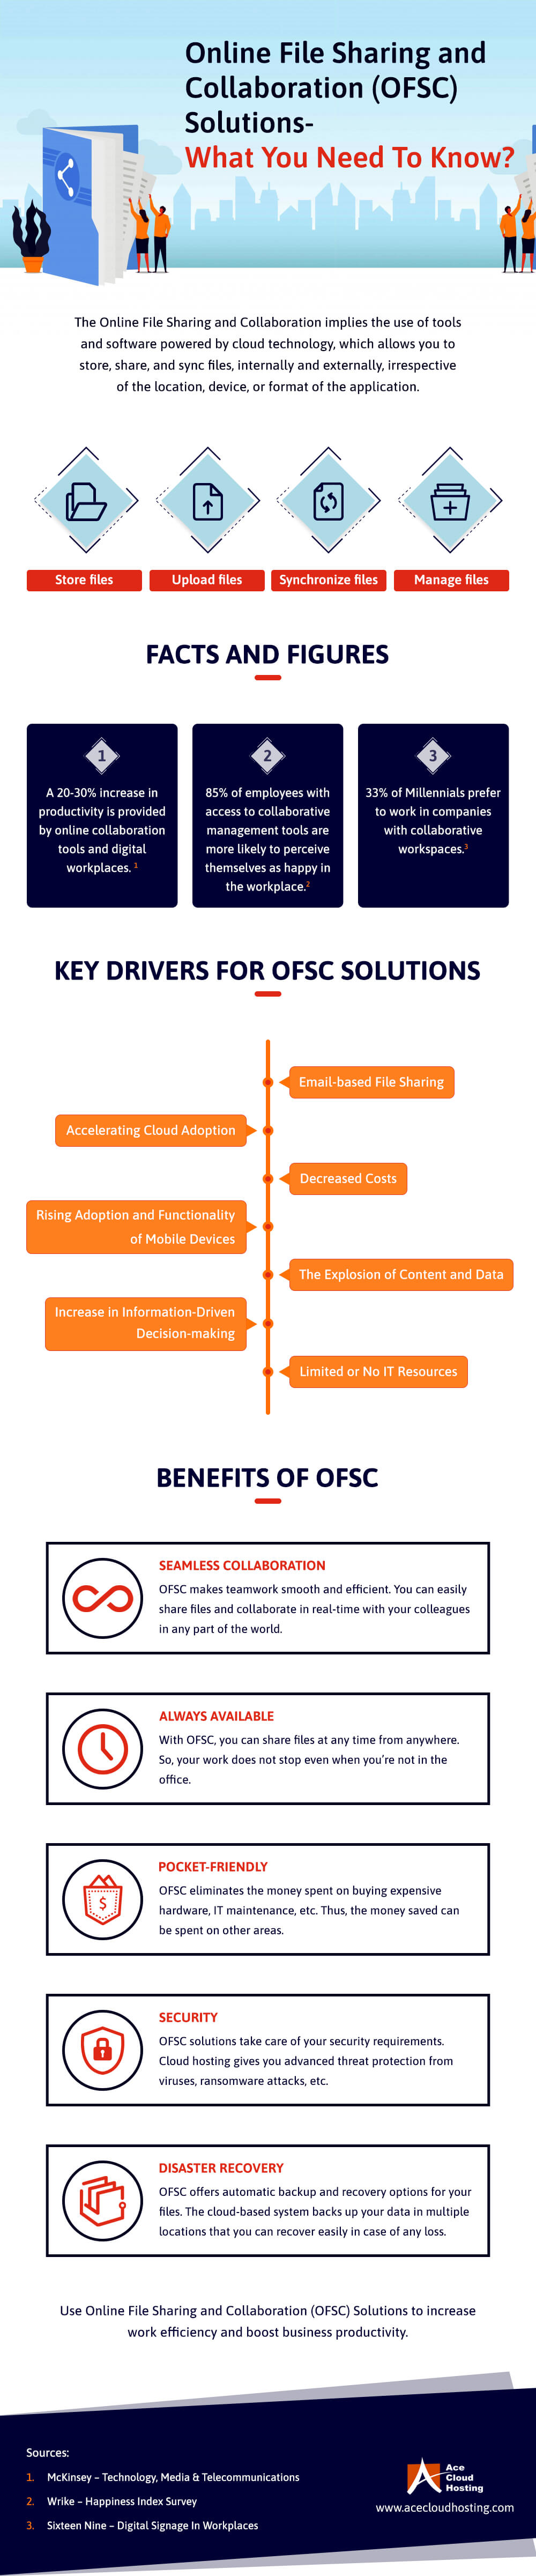 Online File Sharing and Collaboration (OFSC) Solutions – What You Need To Know?